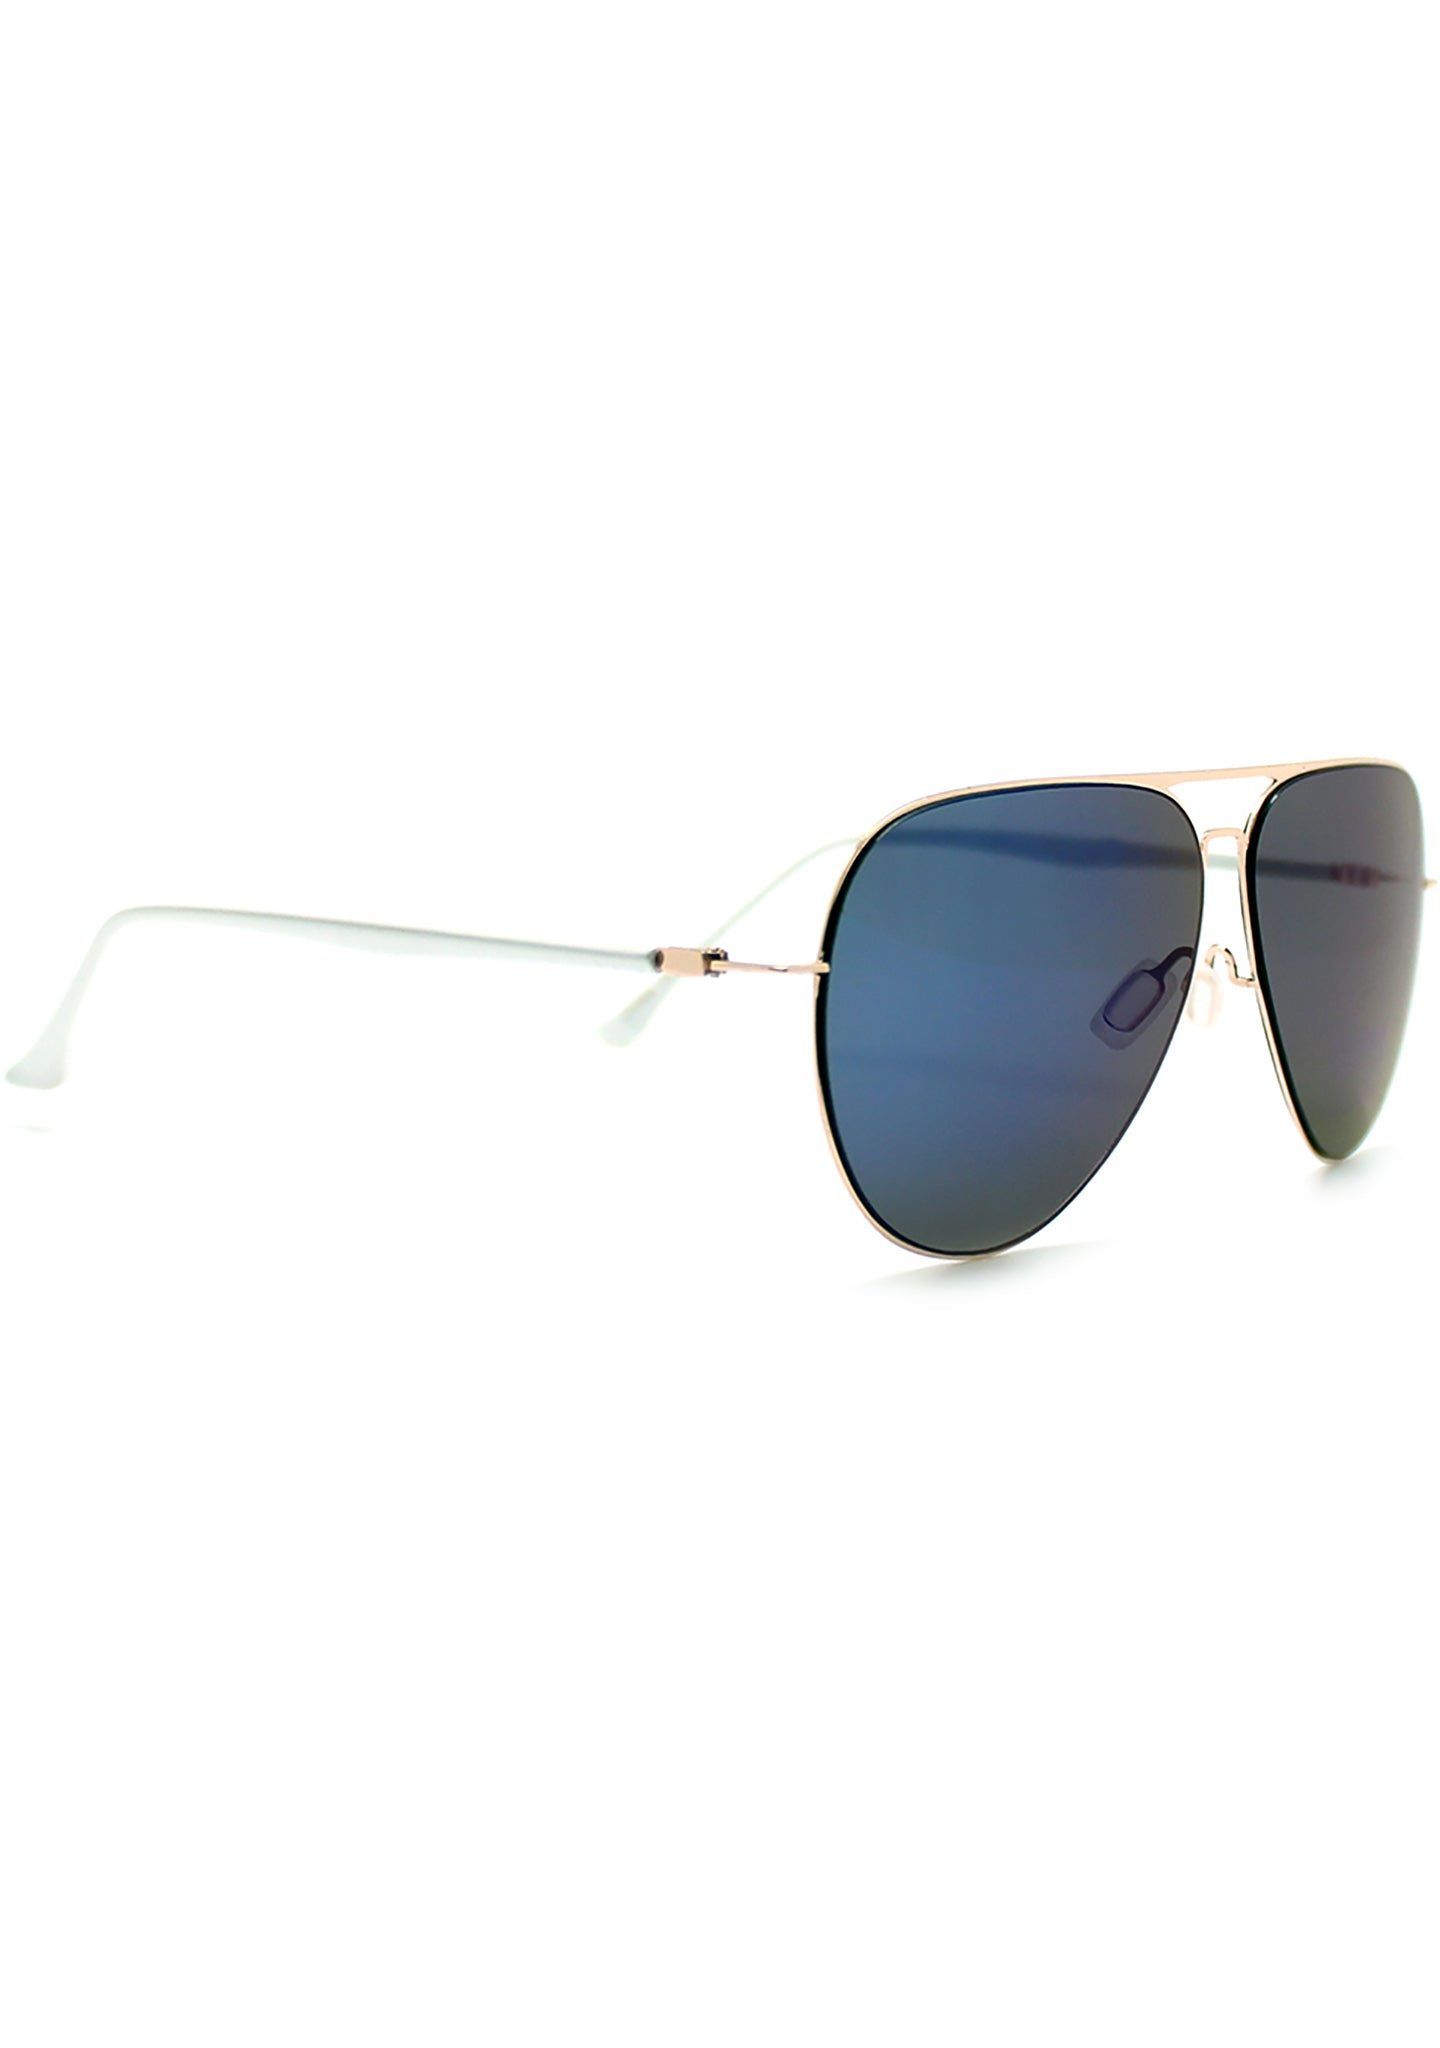 7 LUXE Key West Aviator Sunglasses